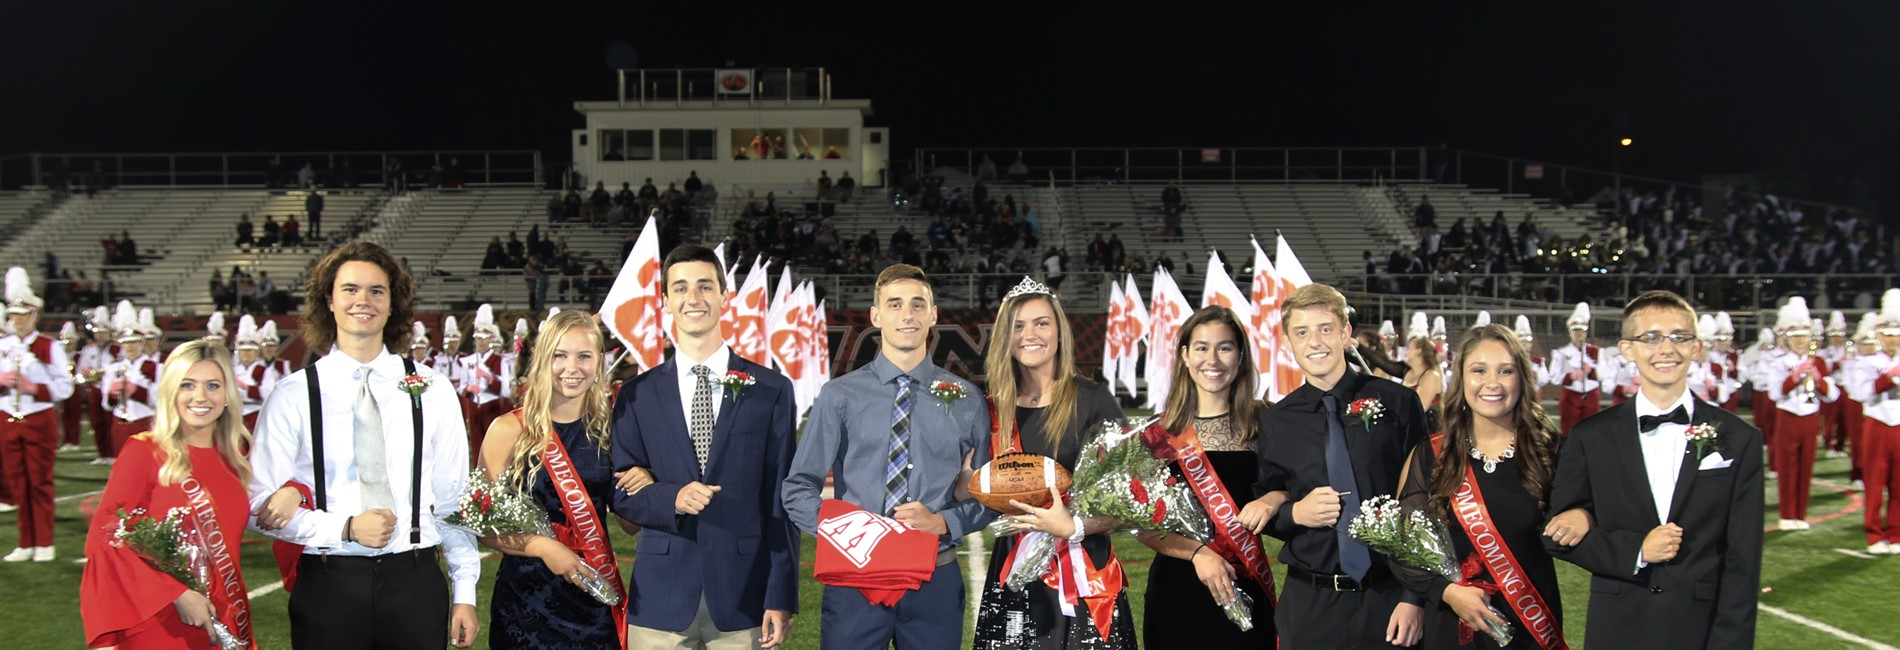 Wadsworth High School Homecoming Court